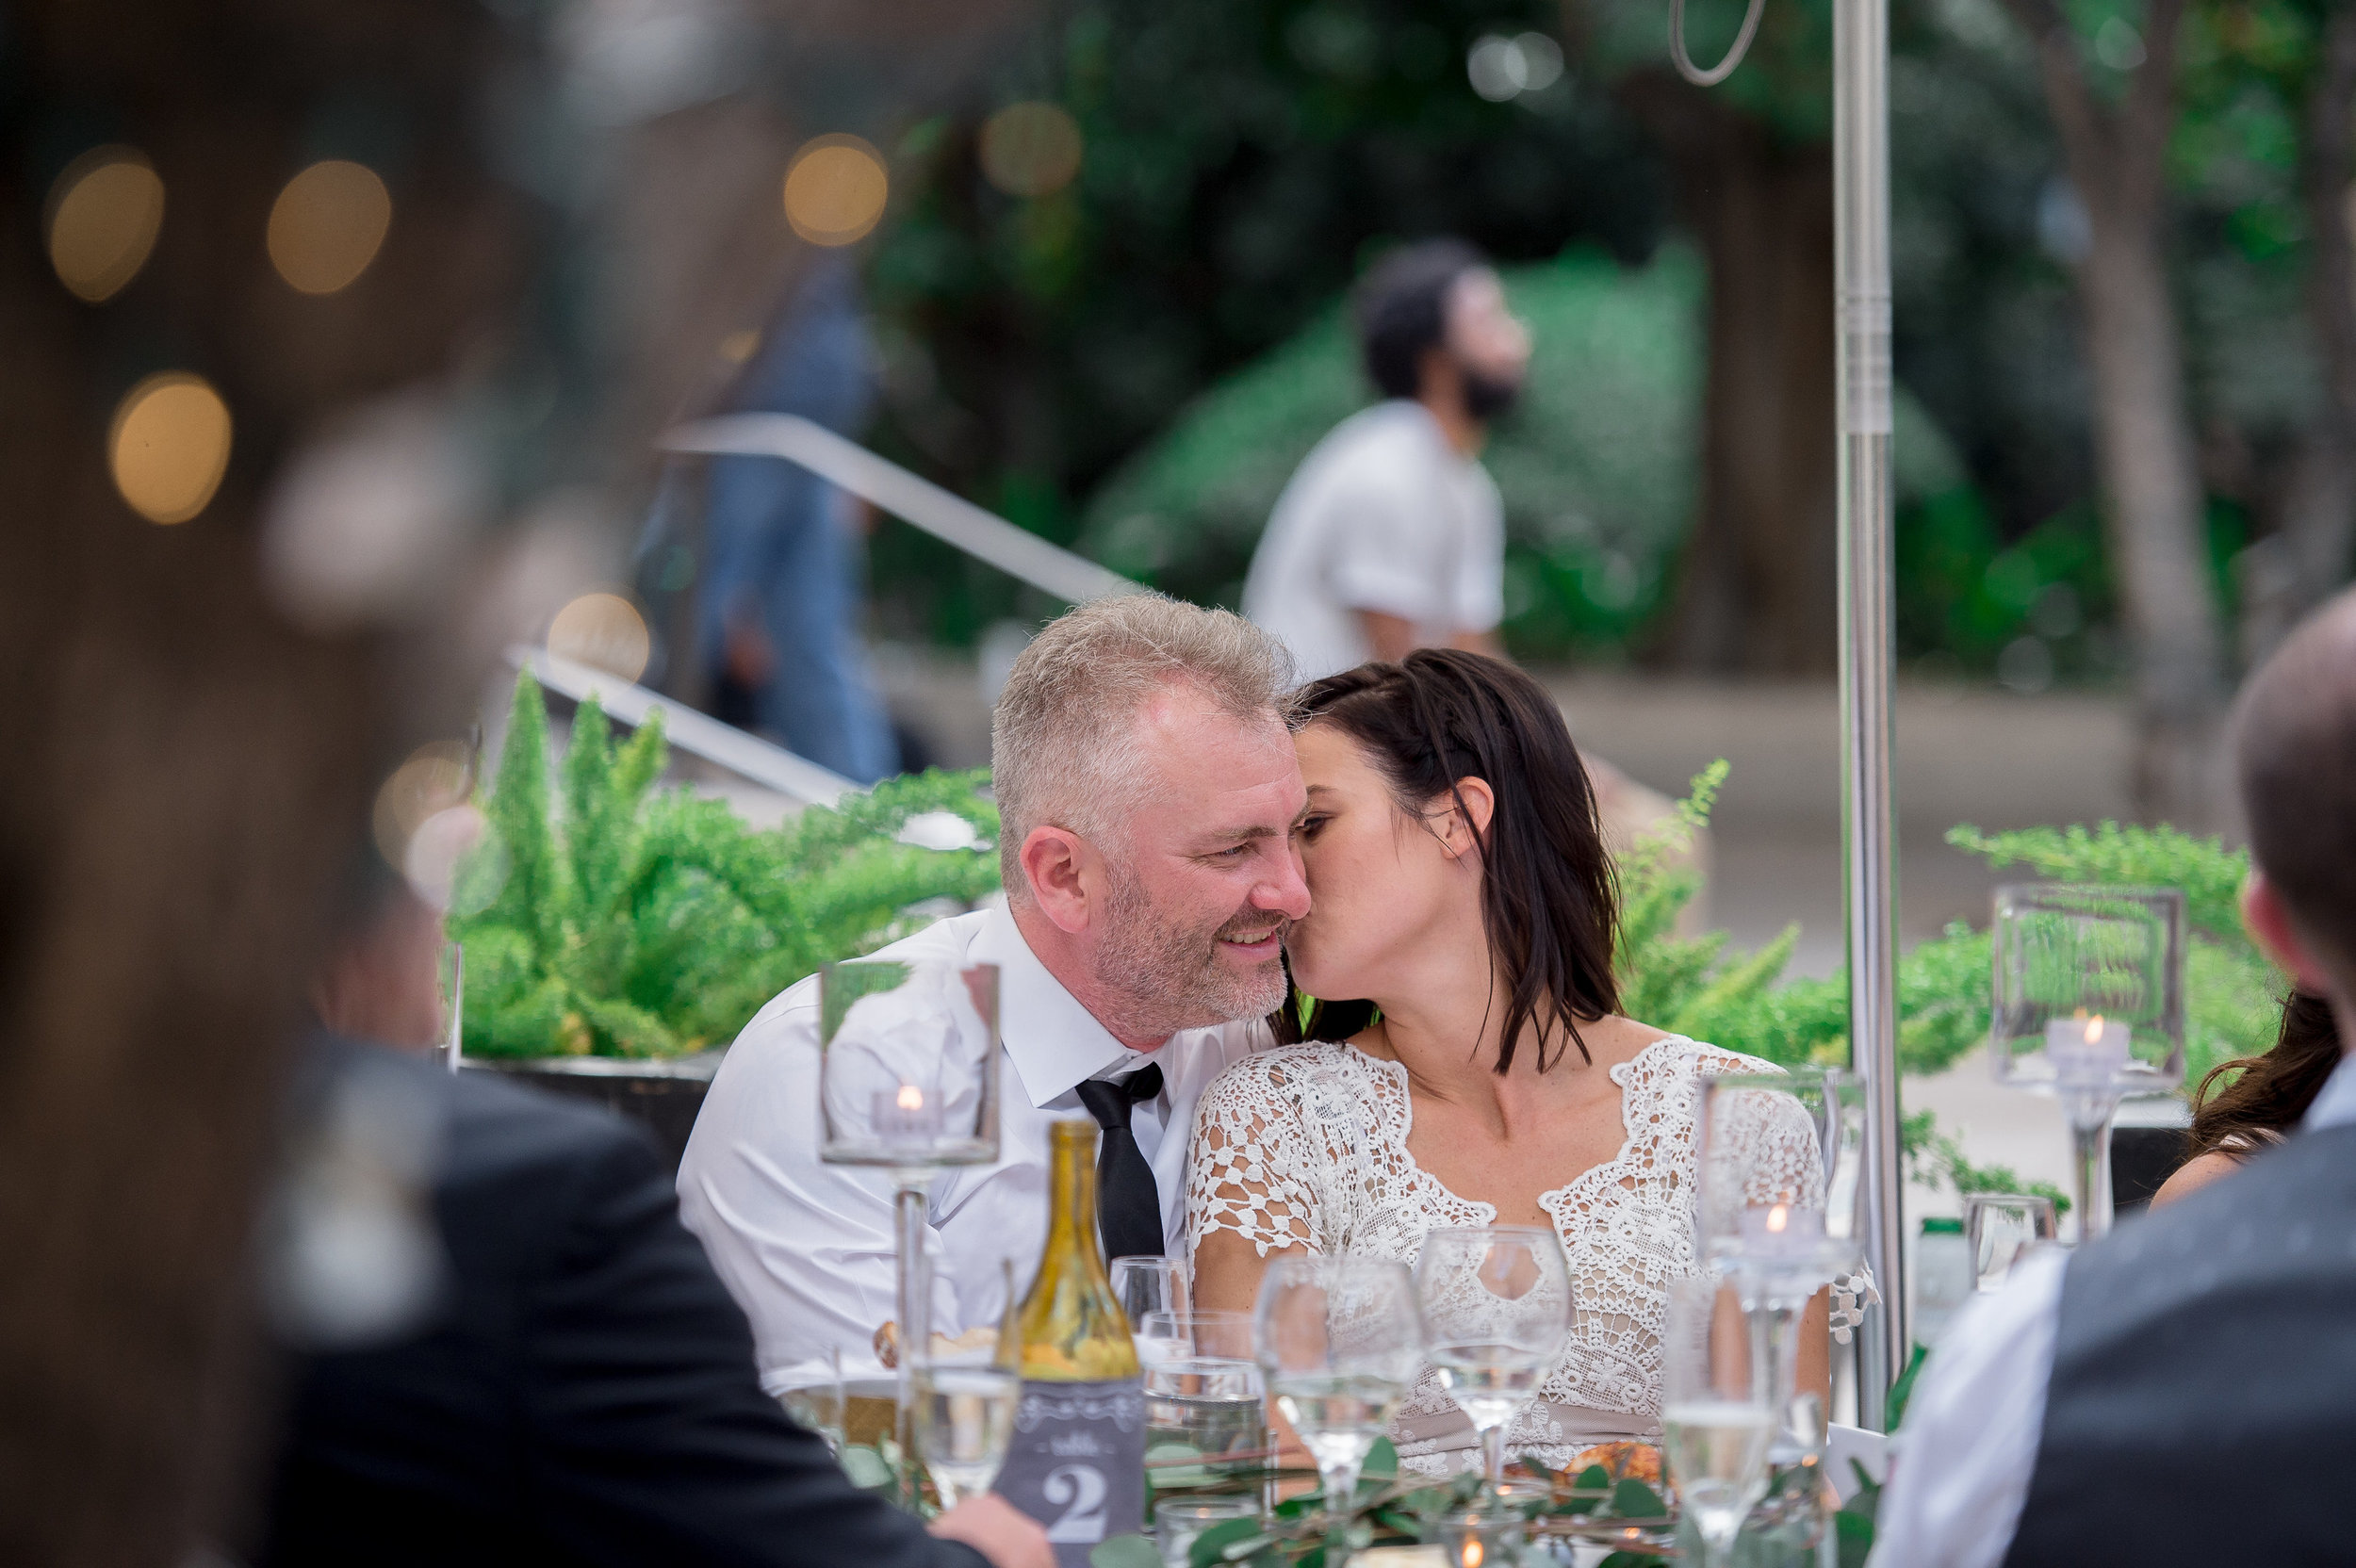 socal-wedding-consultant-best-wedding-planners-in-southern-california-cafe-pinot-wedding-planner83.jpg